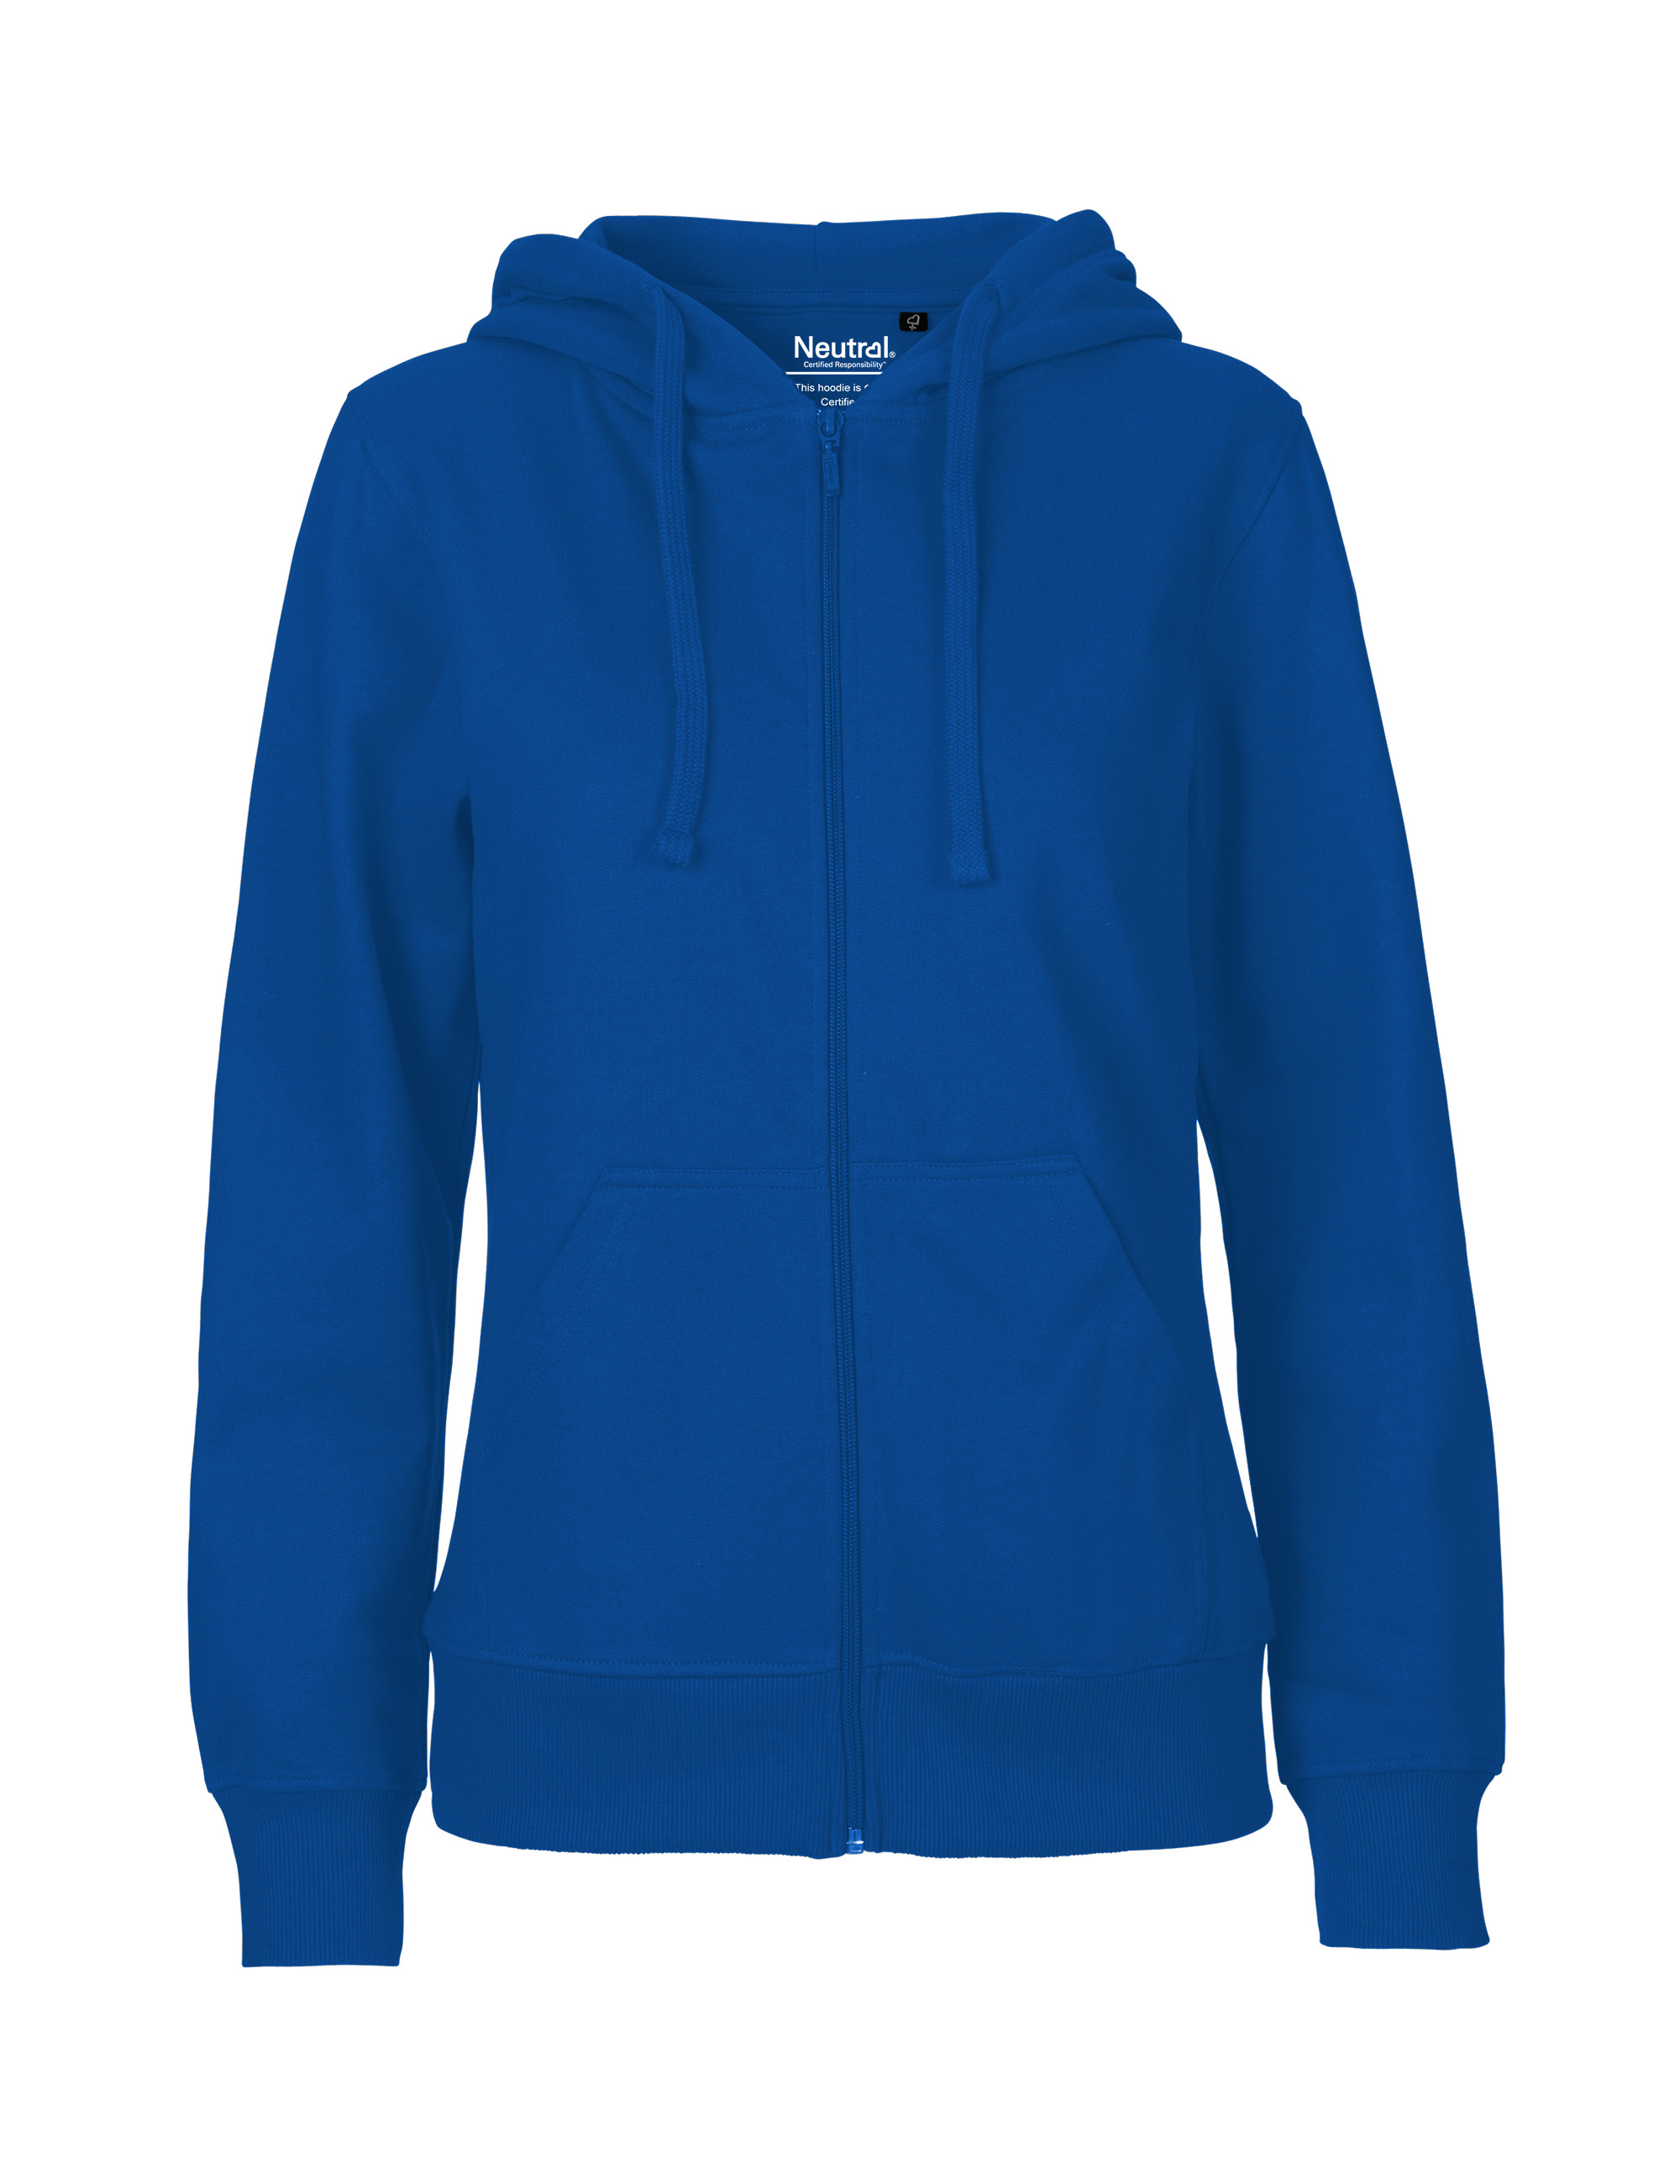 O83301 Ladies Hoodie w. Zip i Royal